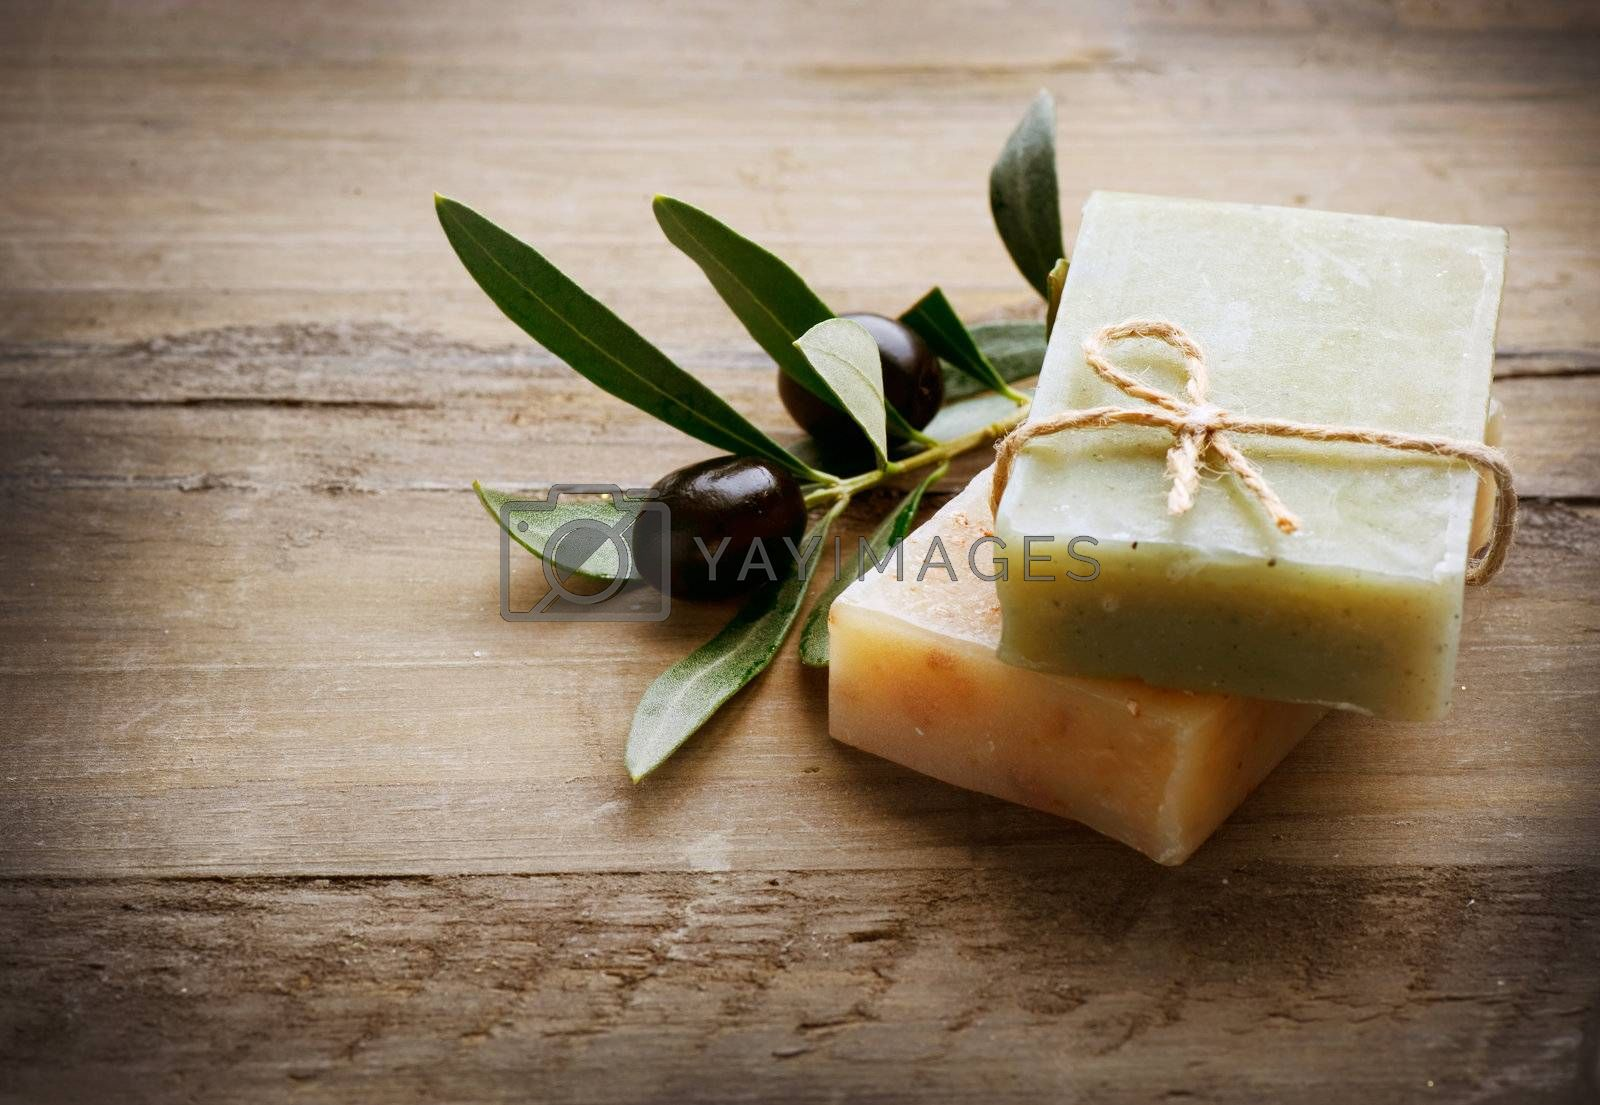 Natural Handmade Soap and Olives by Subbotina Anna